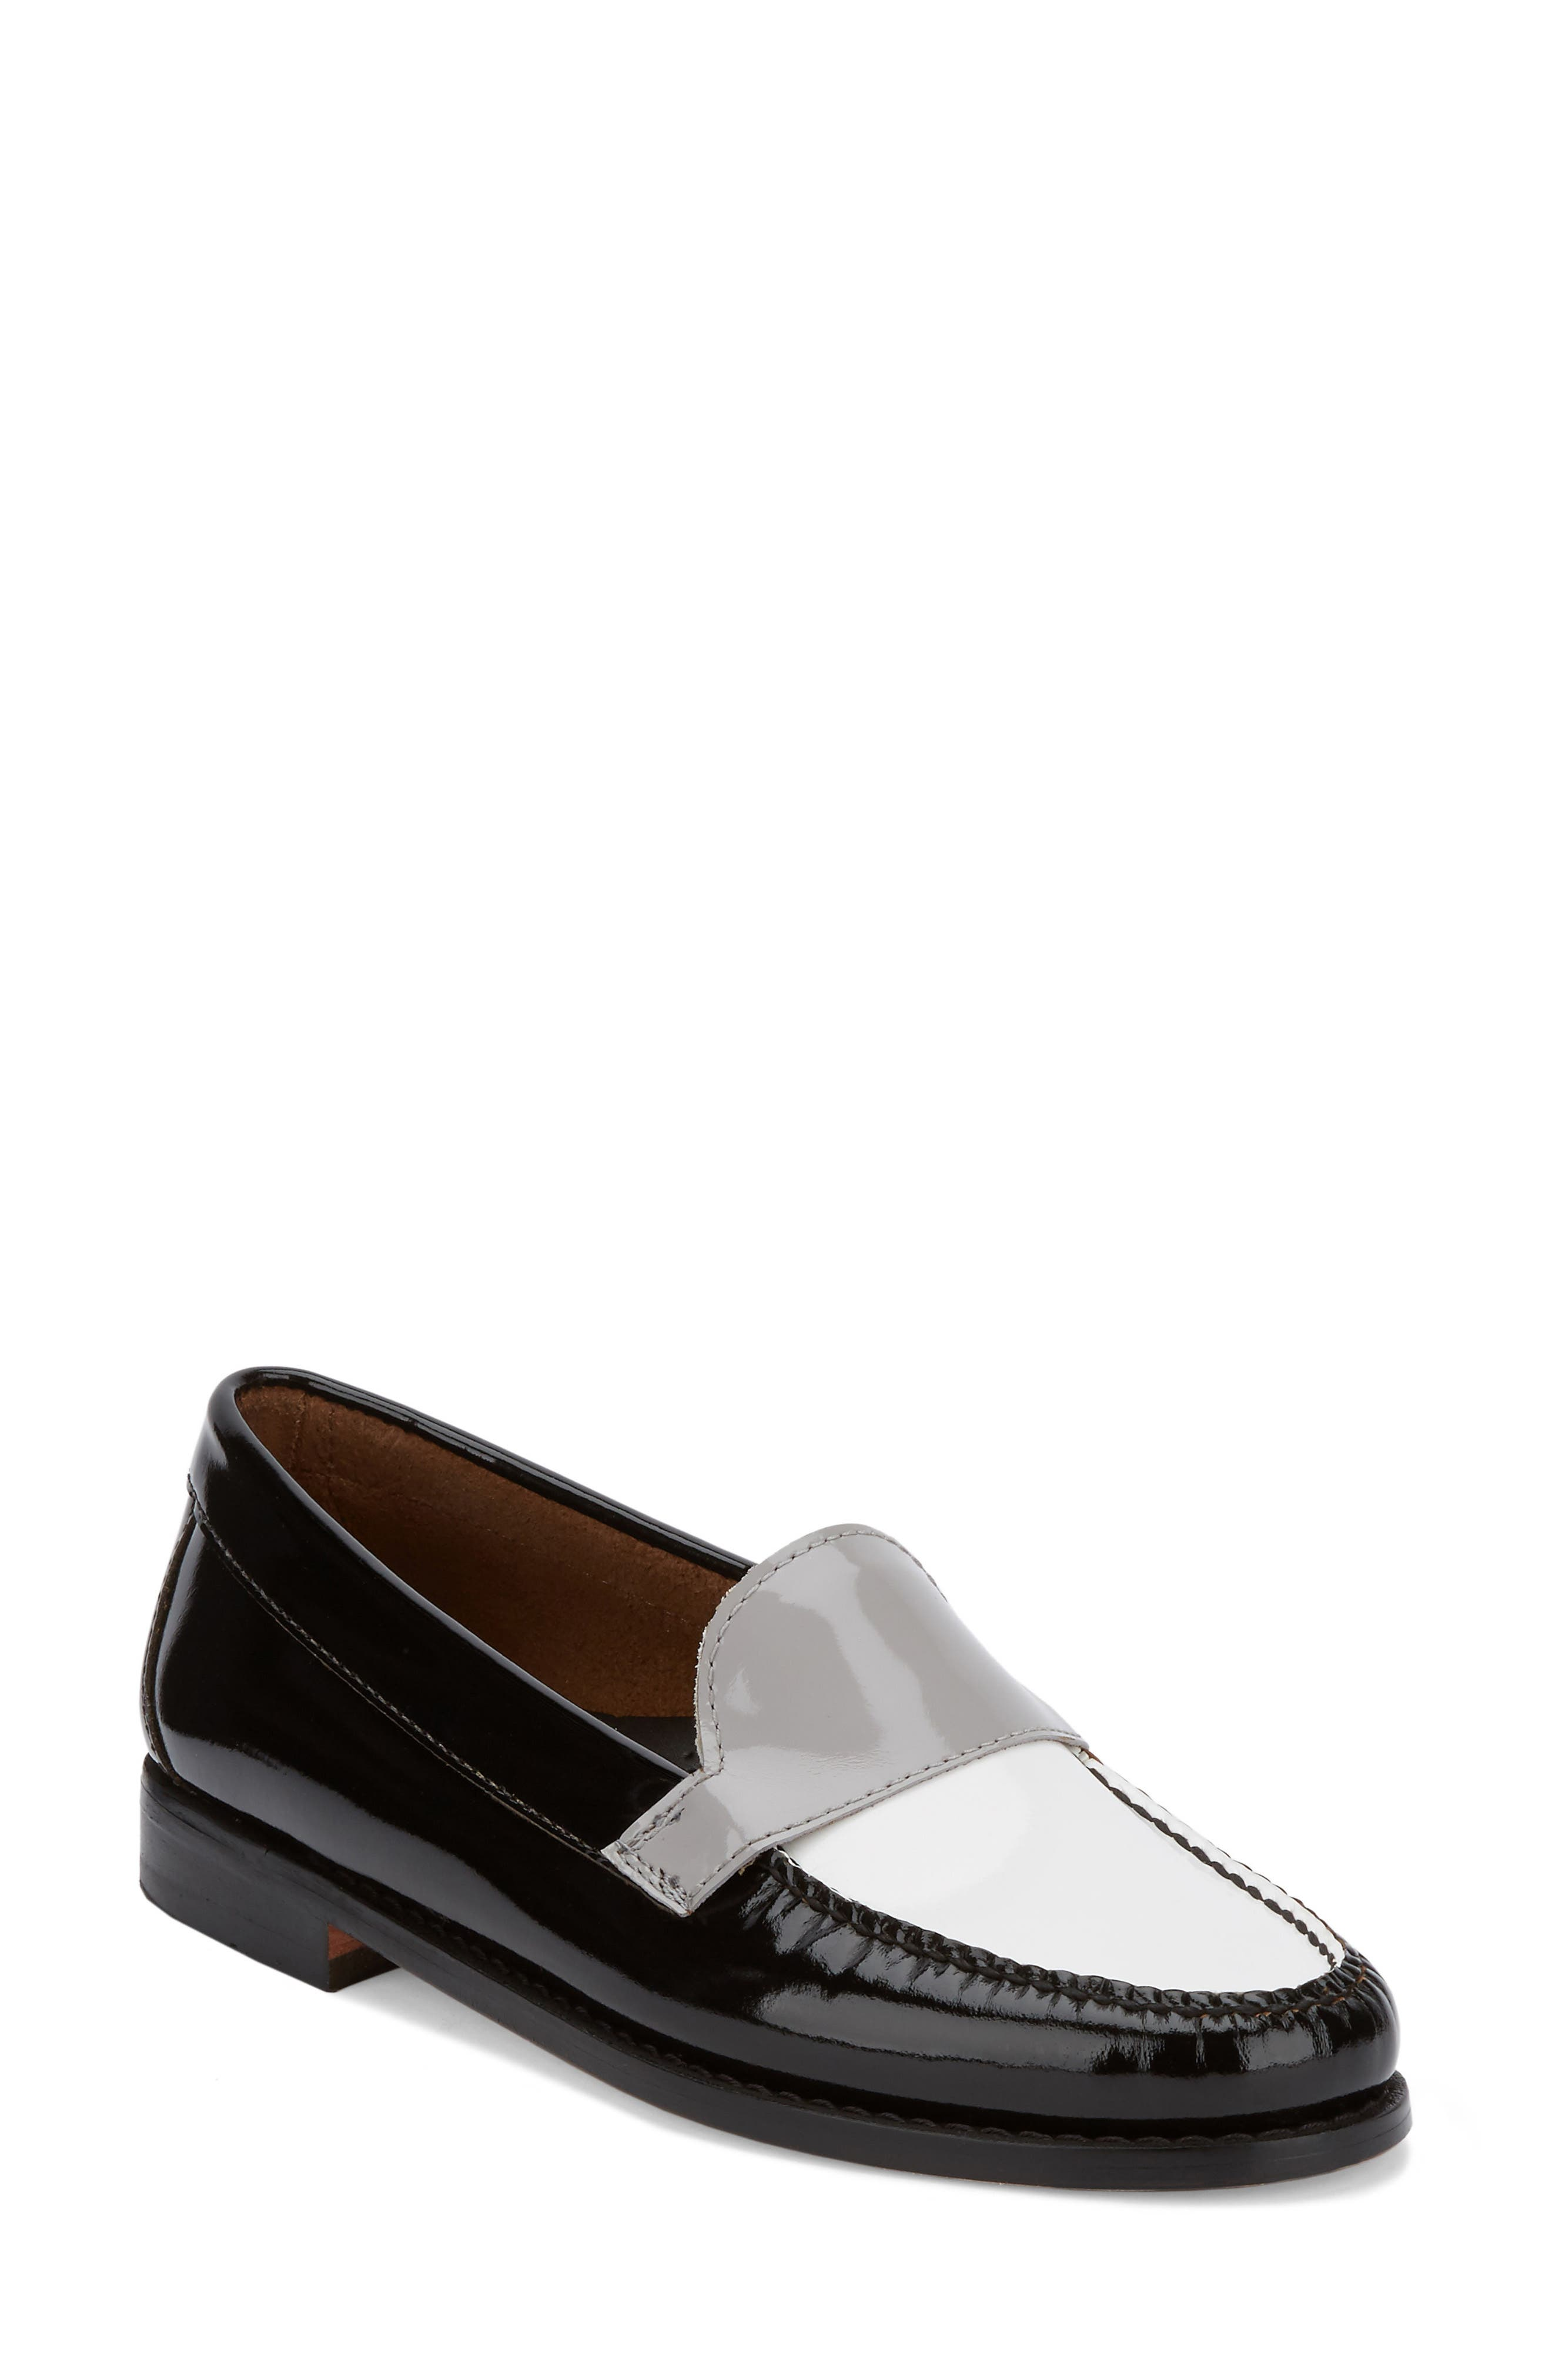 Wylie Loafer,                         Main,                         color,